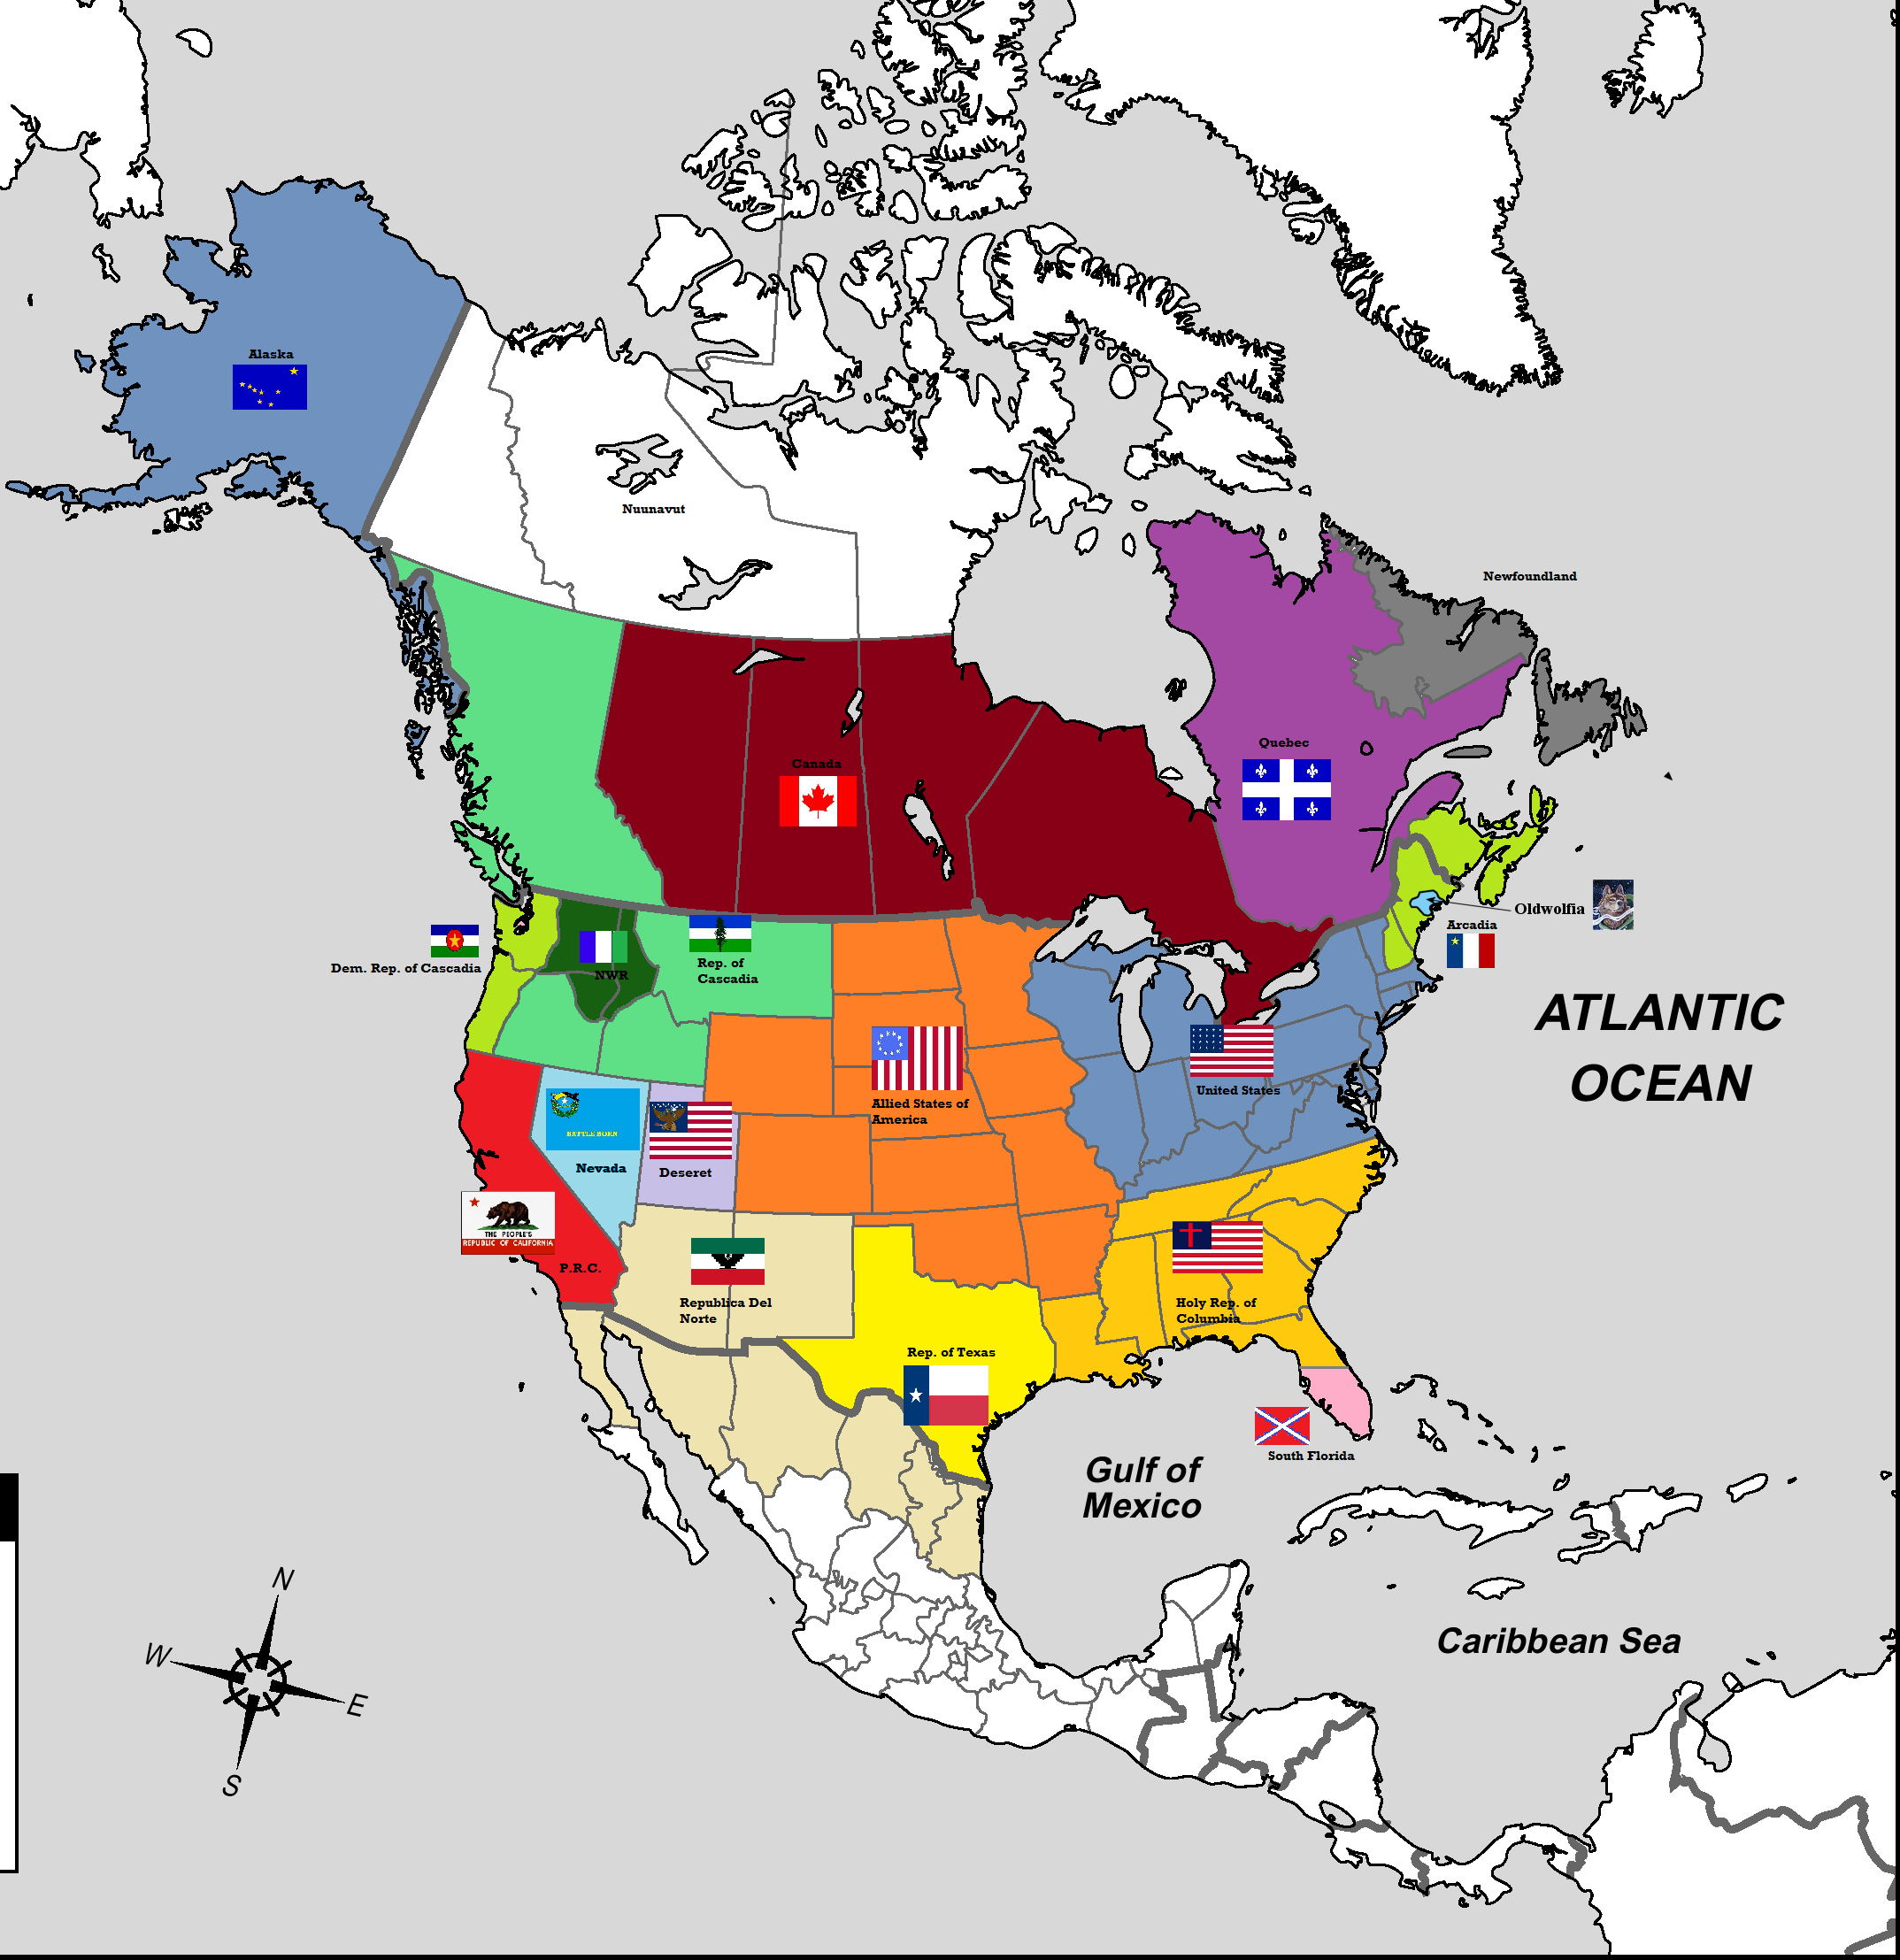 What might north america look like after the happening